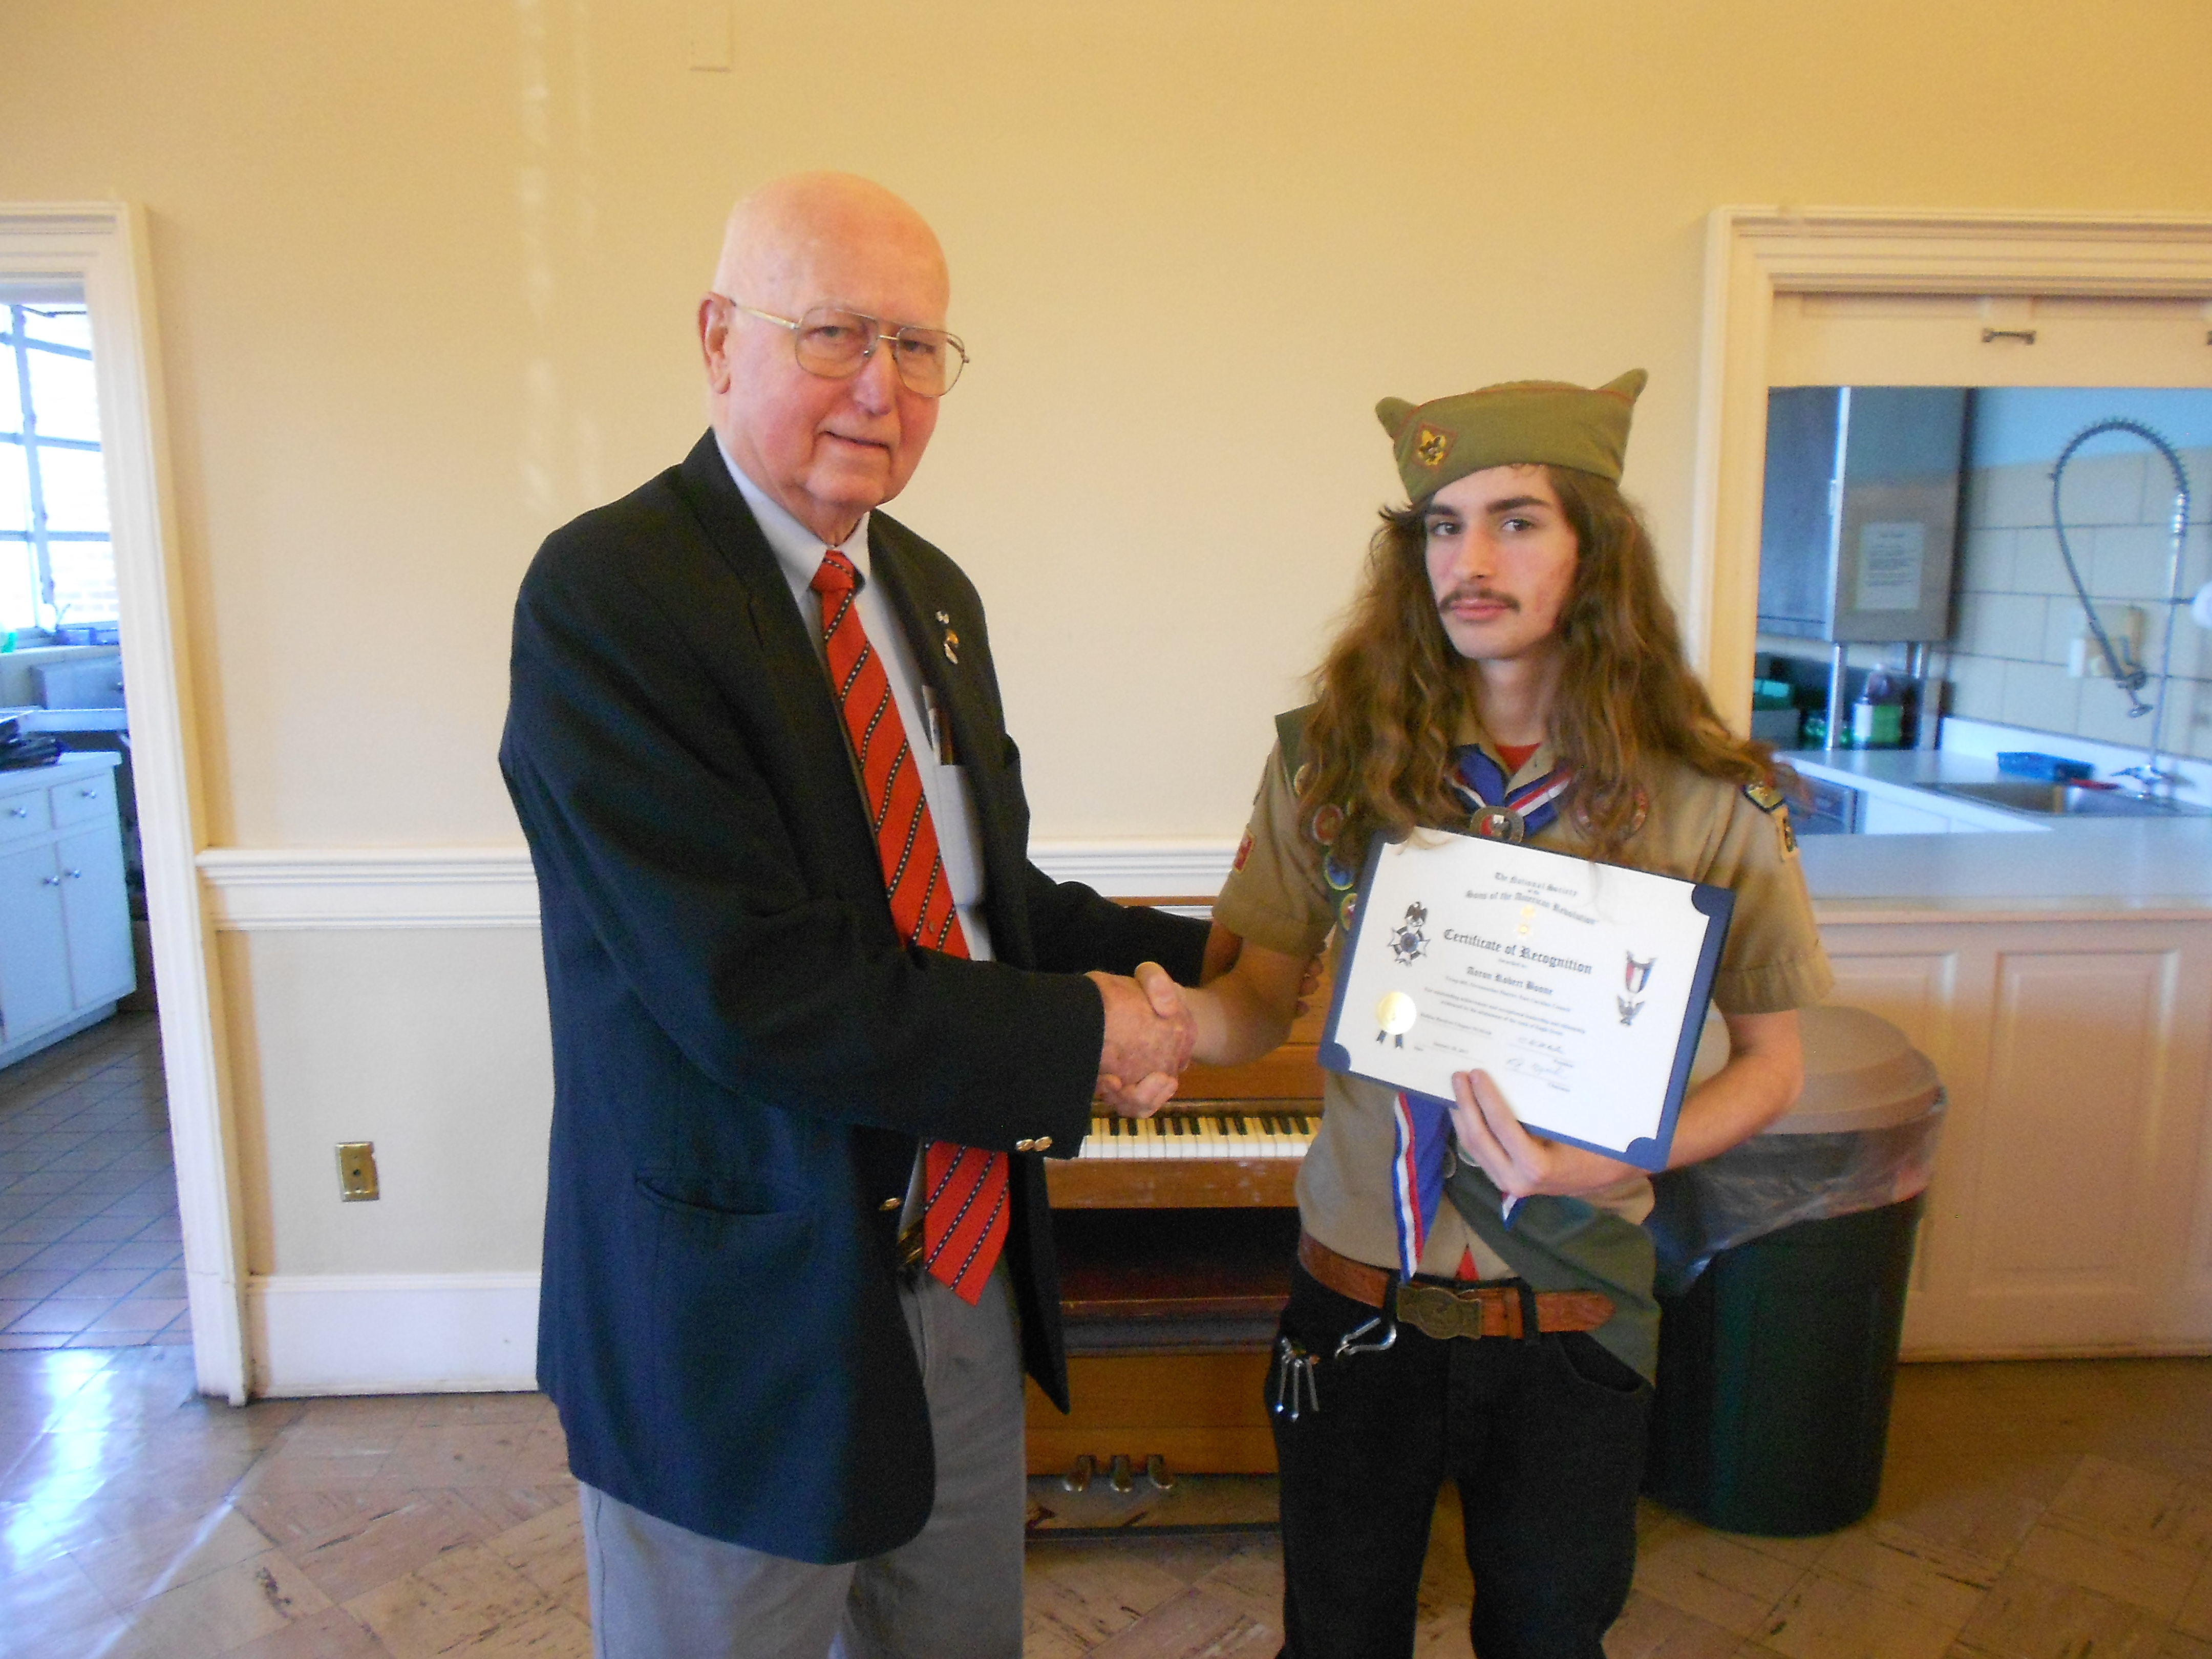 Eagle Scout Recognition Certificate Awarded North Carolina Sar